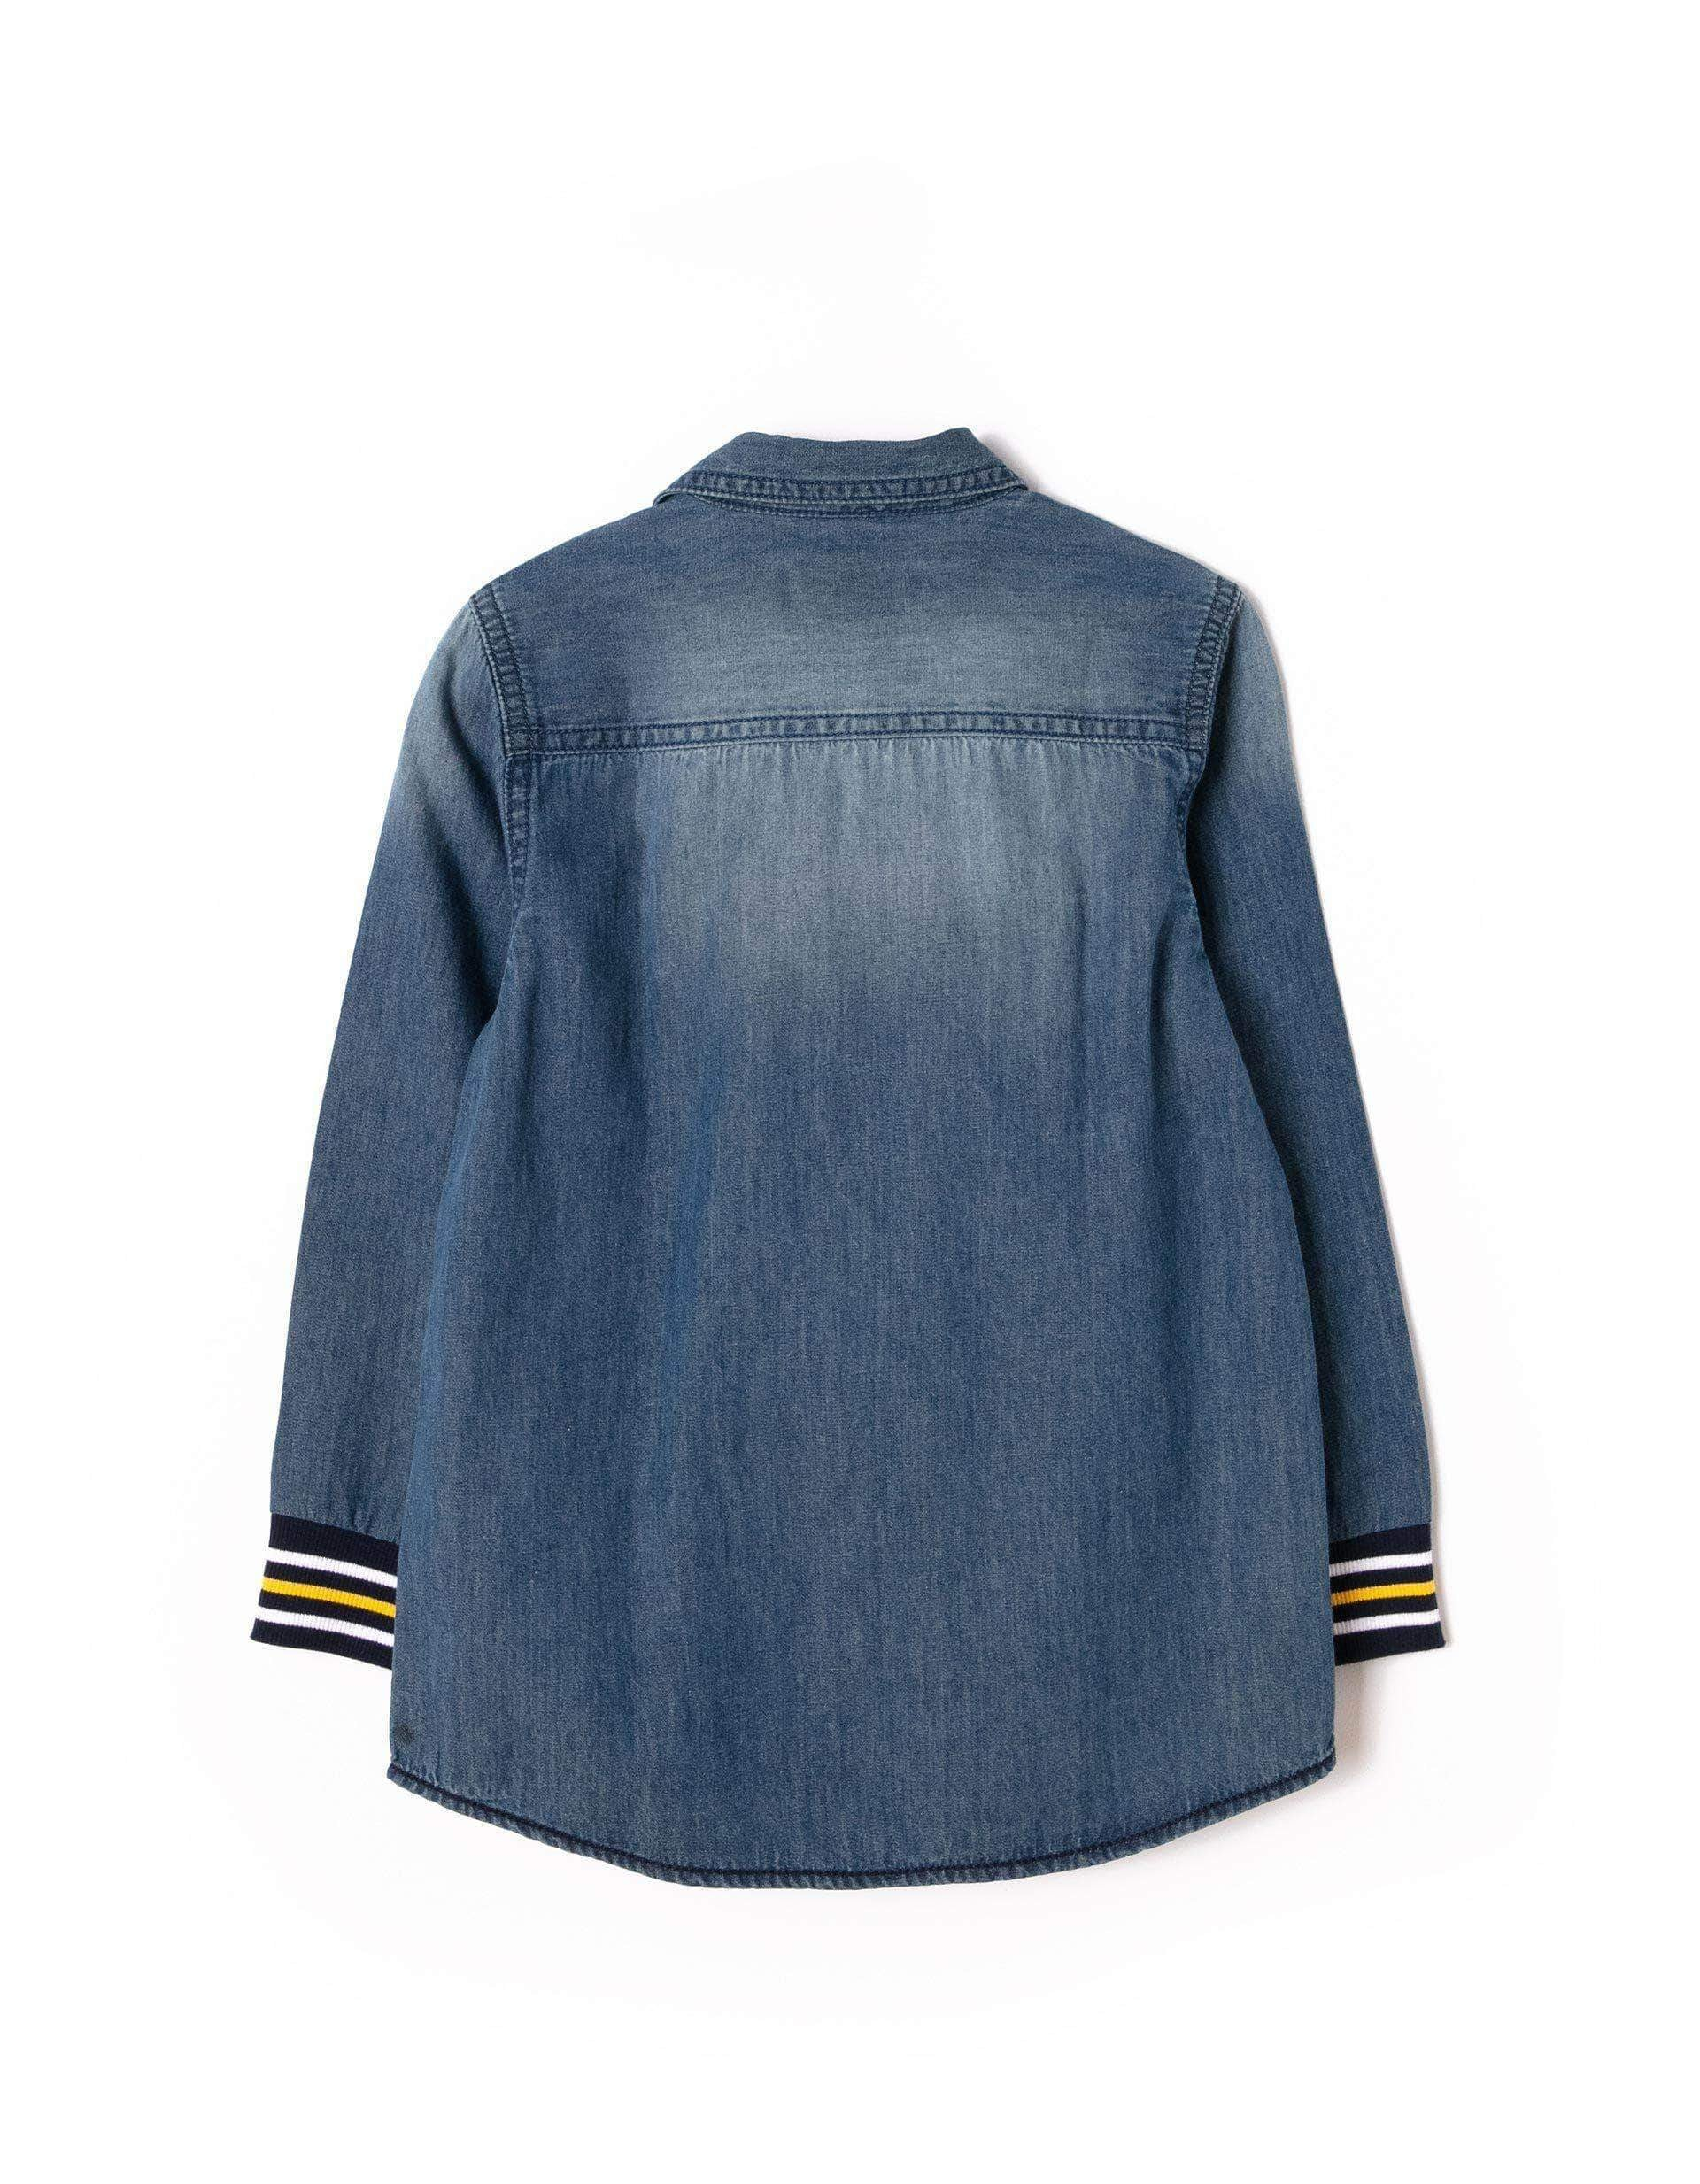 Amazon ZIPPY Camisa Vaquera Light, Azul (Medium Blue Denim 2565), 10 años (Tamaño del Fabricante:9/10) para Niños